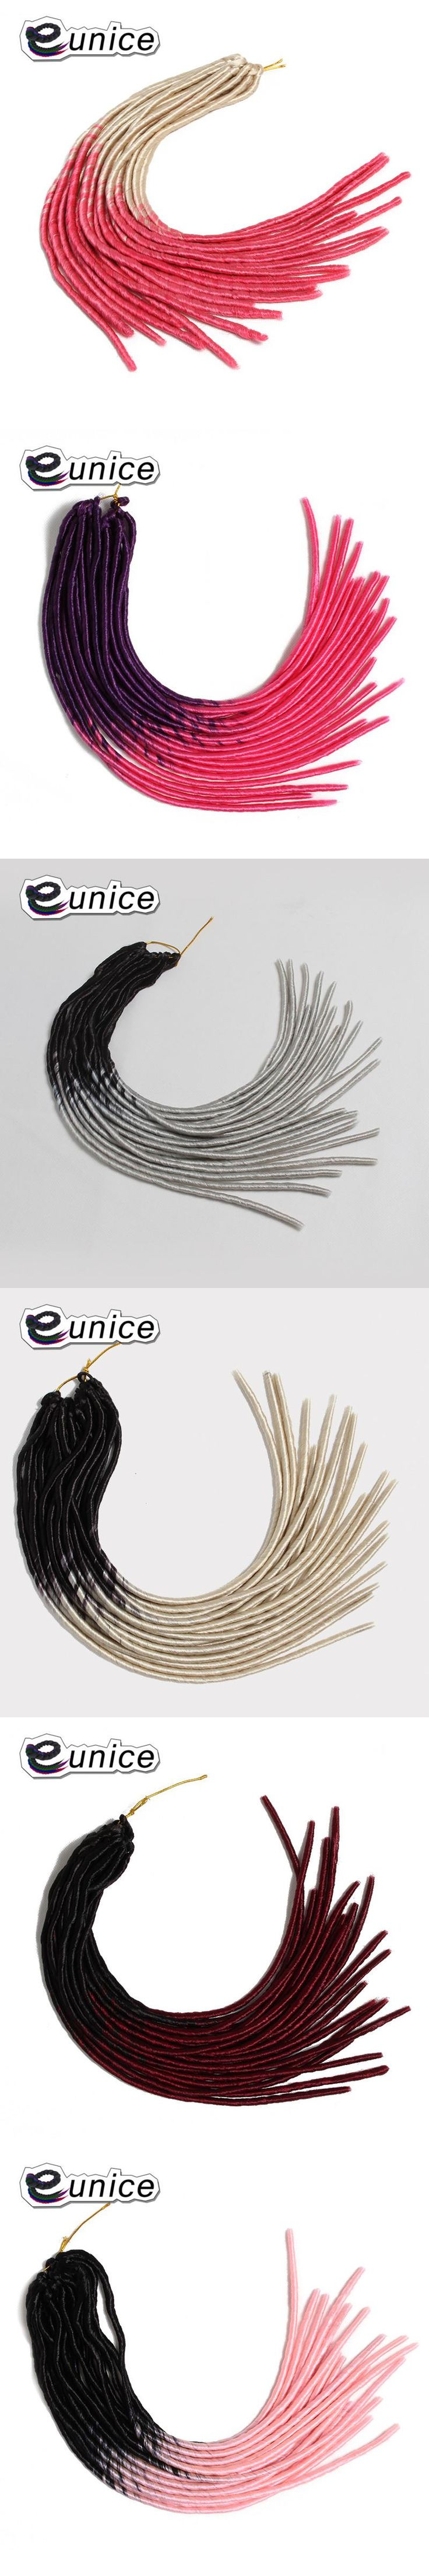 """Eunice 20""""inch braiding ombre T1B/PINK kanekalon Hair Dreadlocks Braids Synthetic Bundles 20Strands/pack Colored Hair Extensions"""